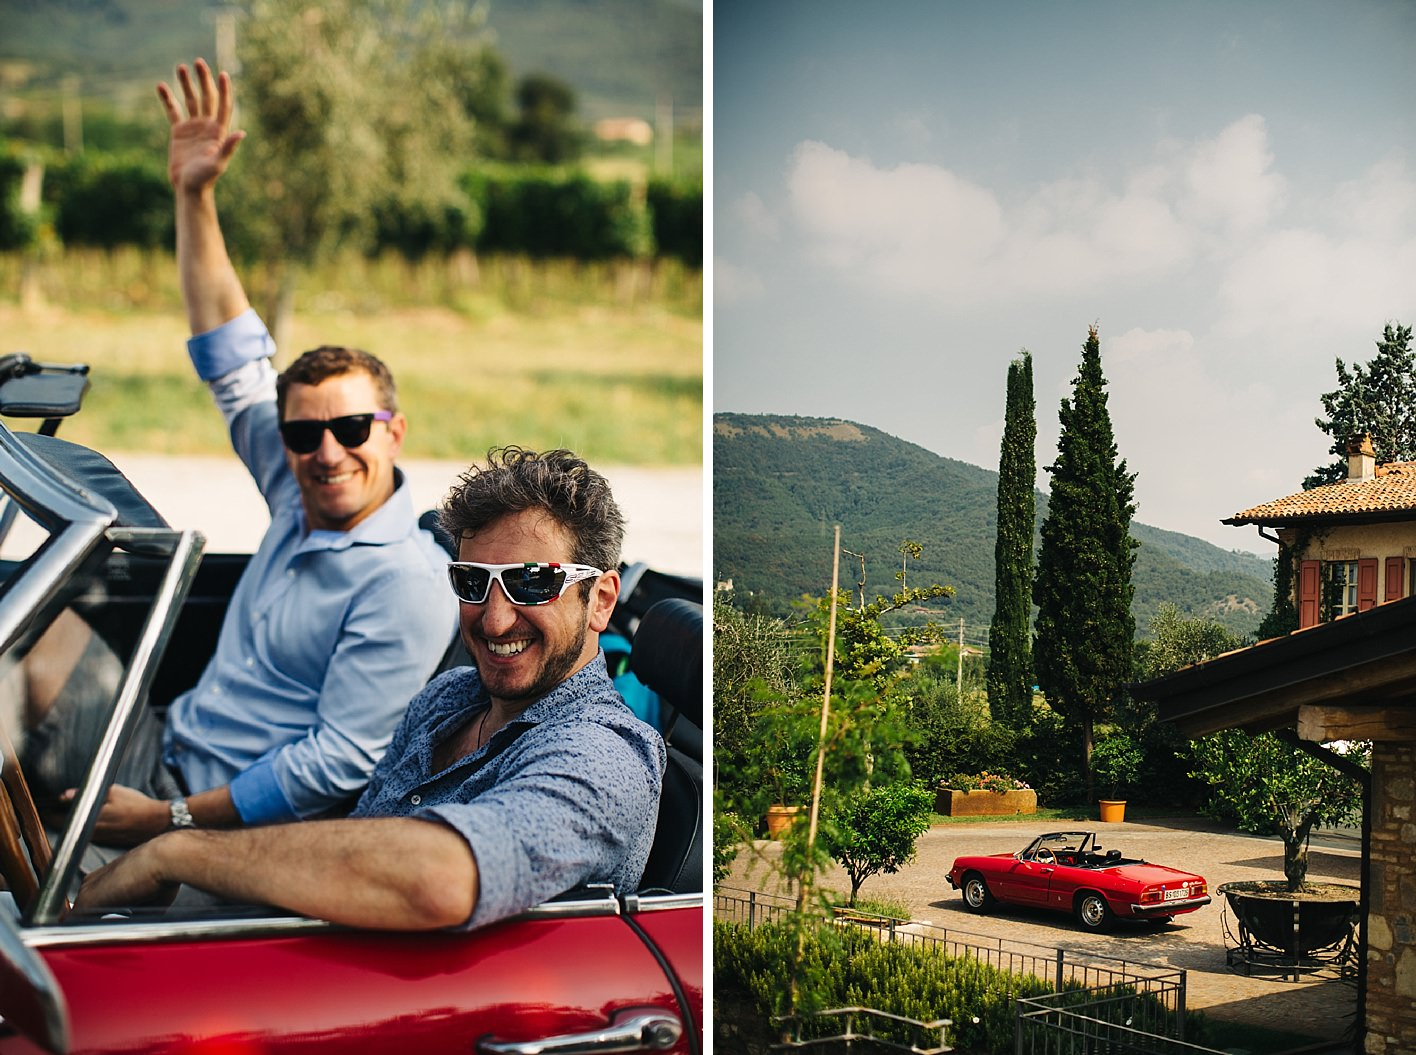 Groom and best man in vintage car